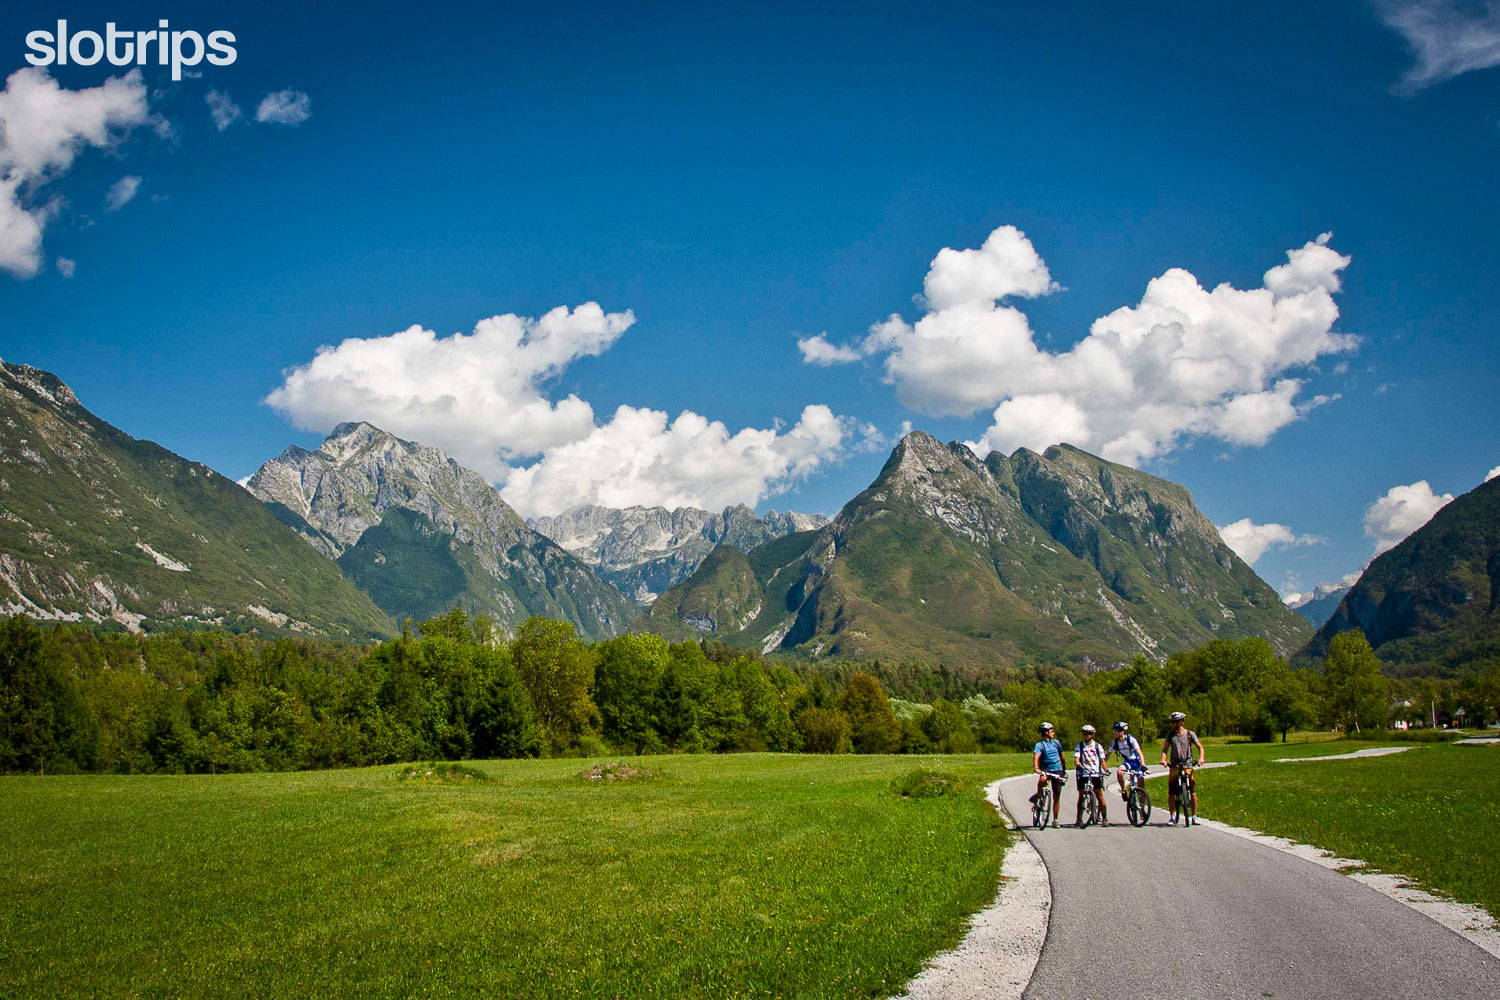 Cycling in the Soca valley near Bovec, Slovenia